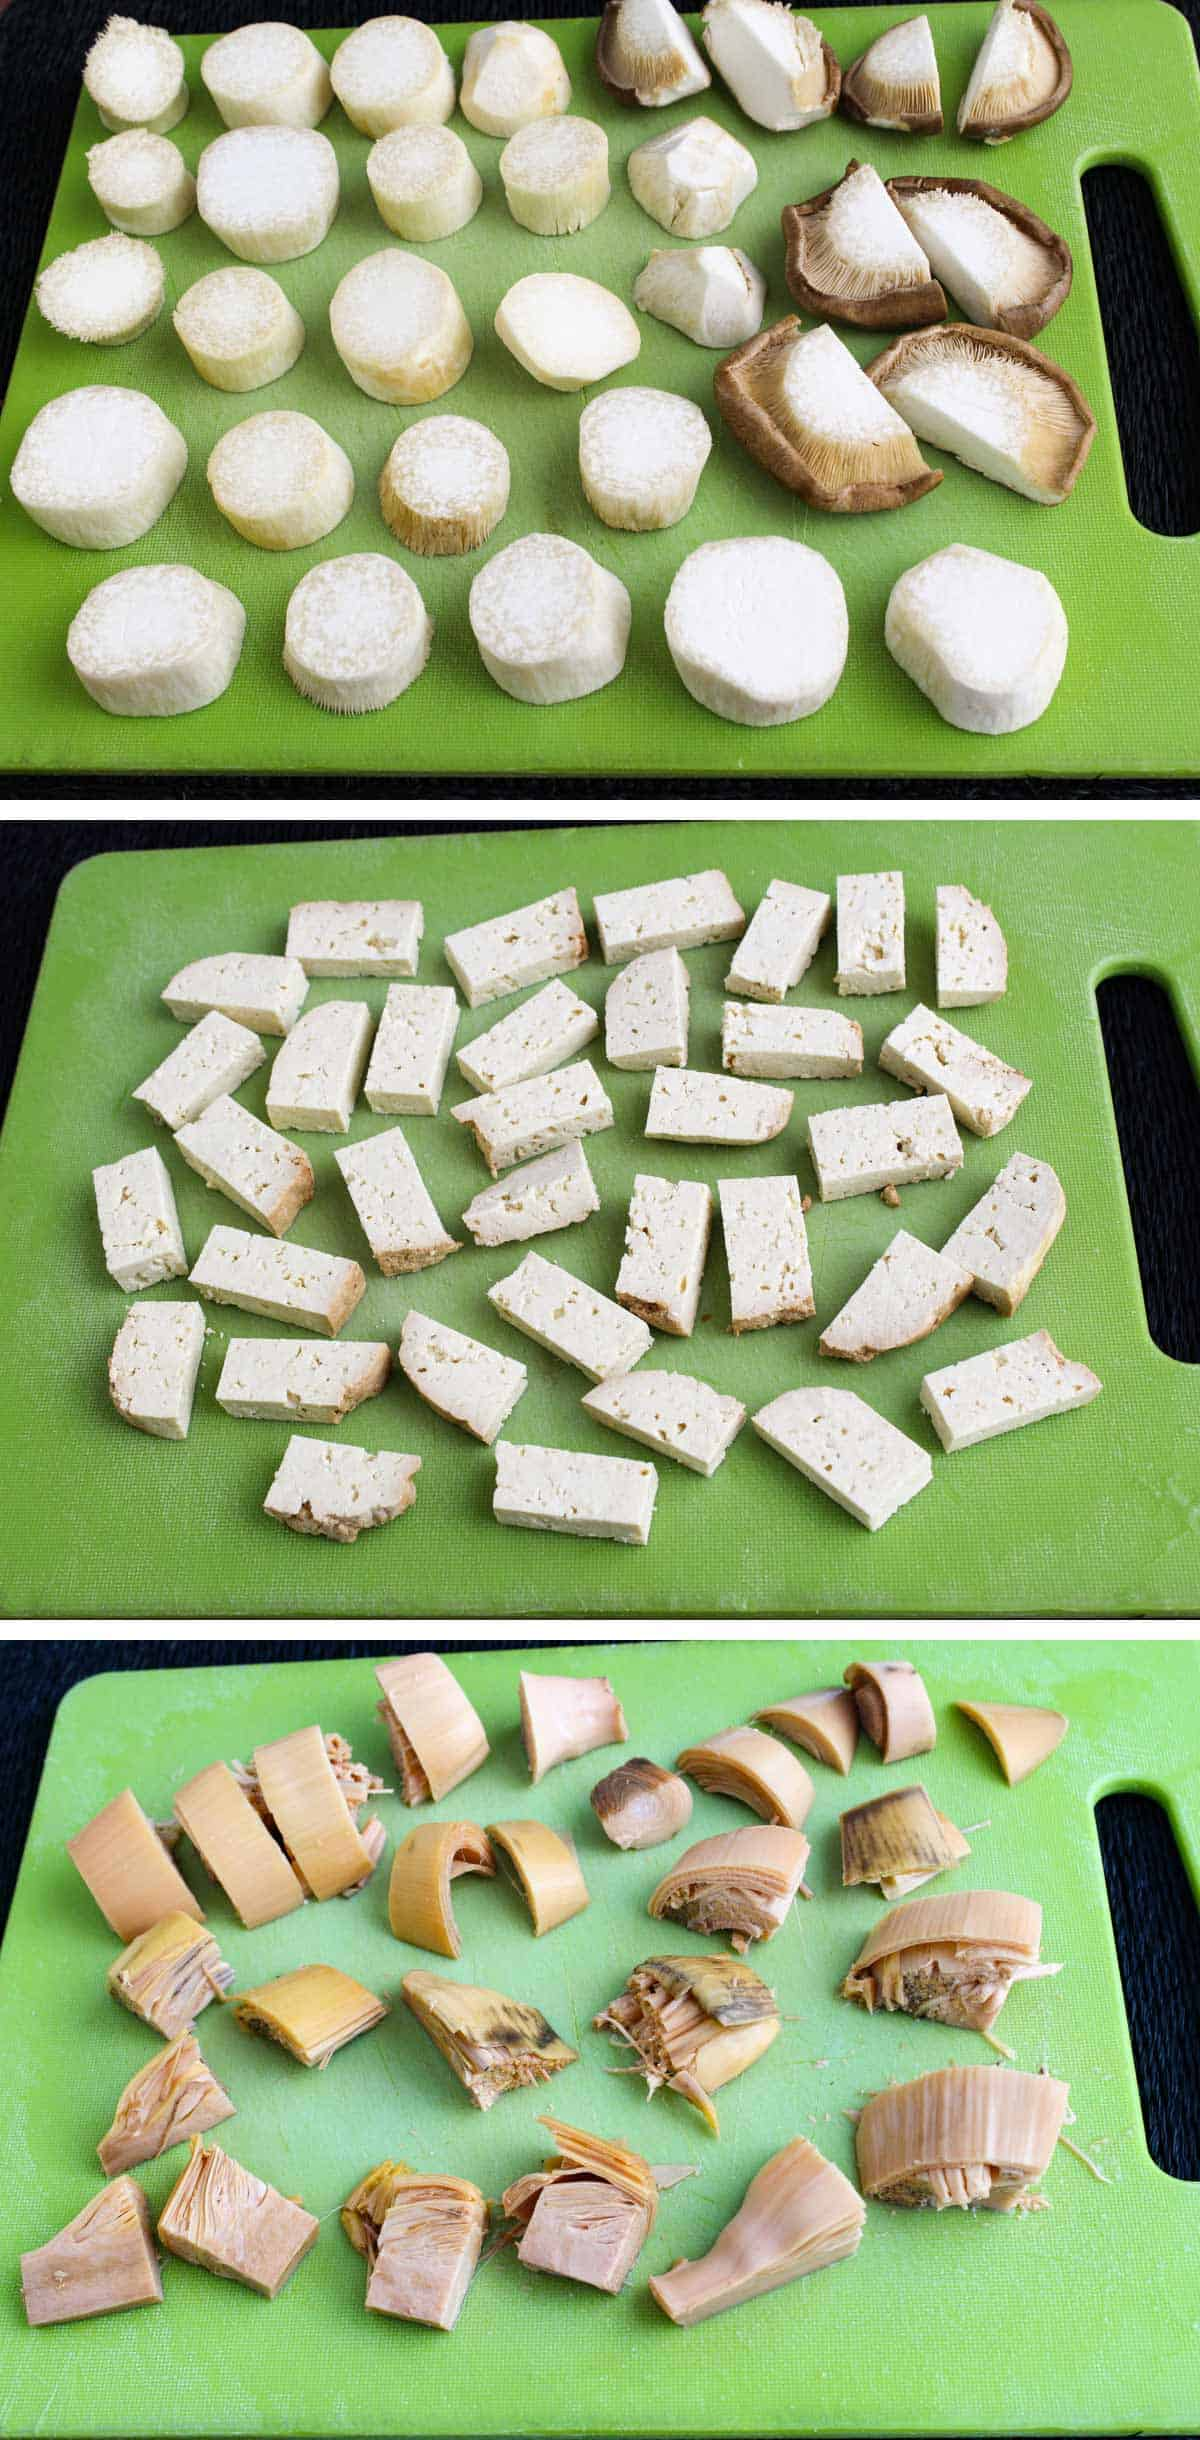 Pictures Showing How to Prepare the Fish Pie Ingredients